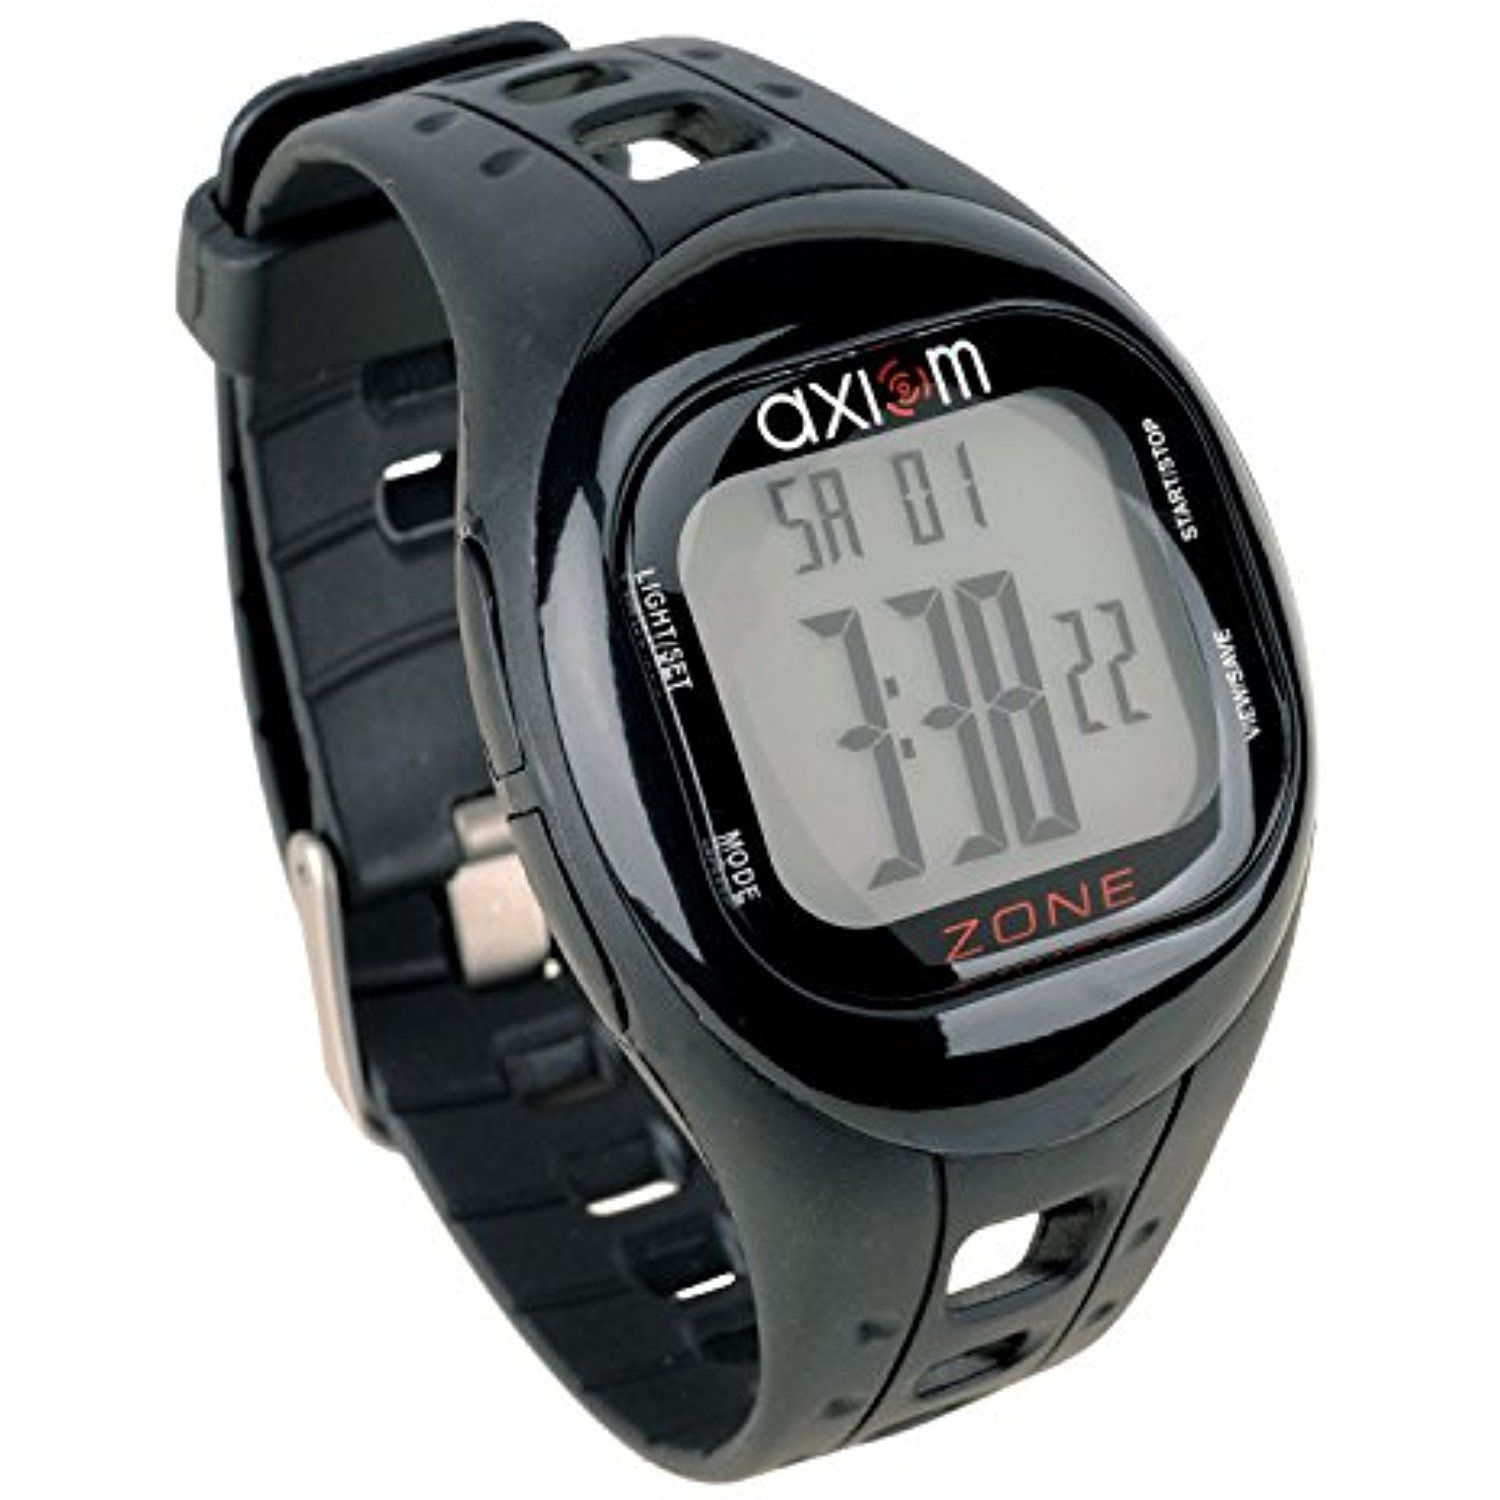 Axiom Zone Heart Rate Monitor * You can find out more